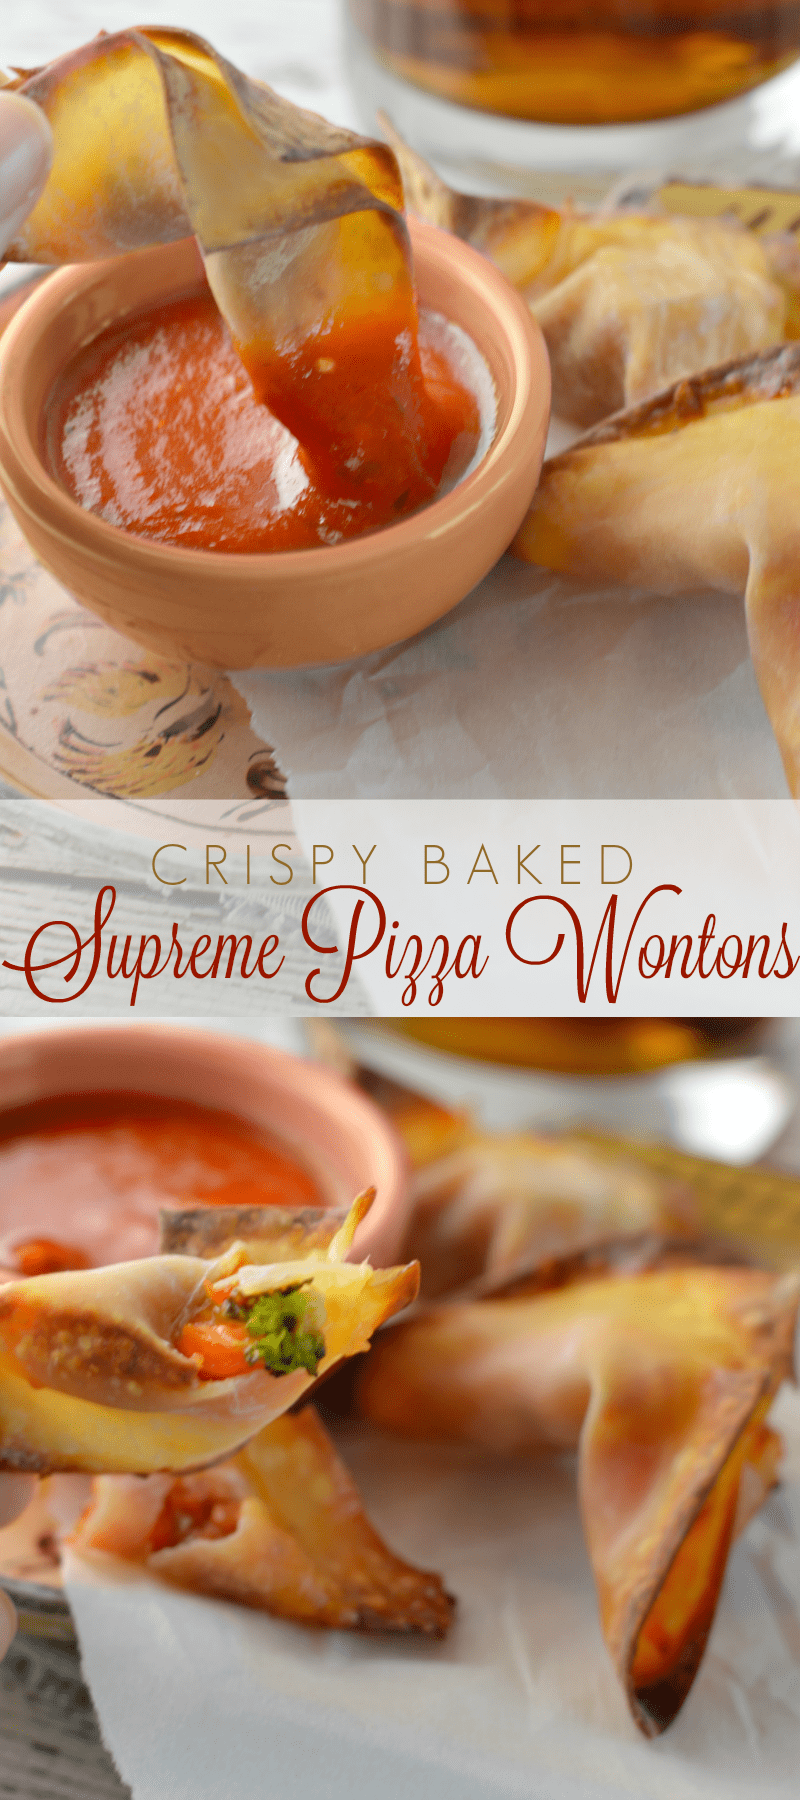 Easy Crispy Supreme Pizza Wontons - easy to make, bake and serve. These are a huge hit every time we make them. So good!